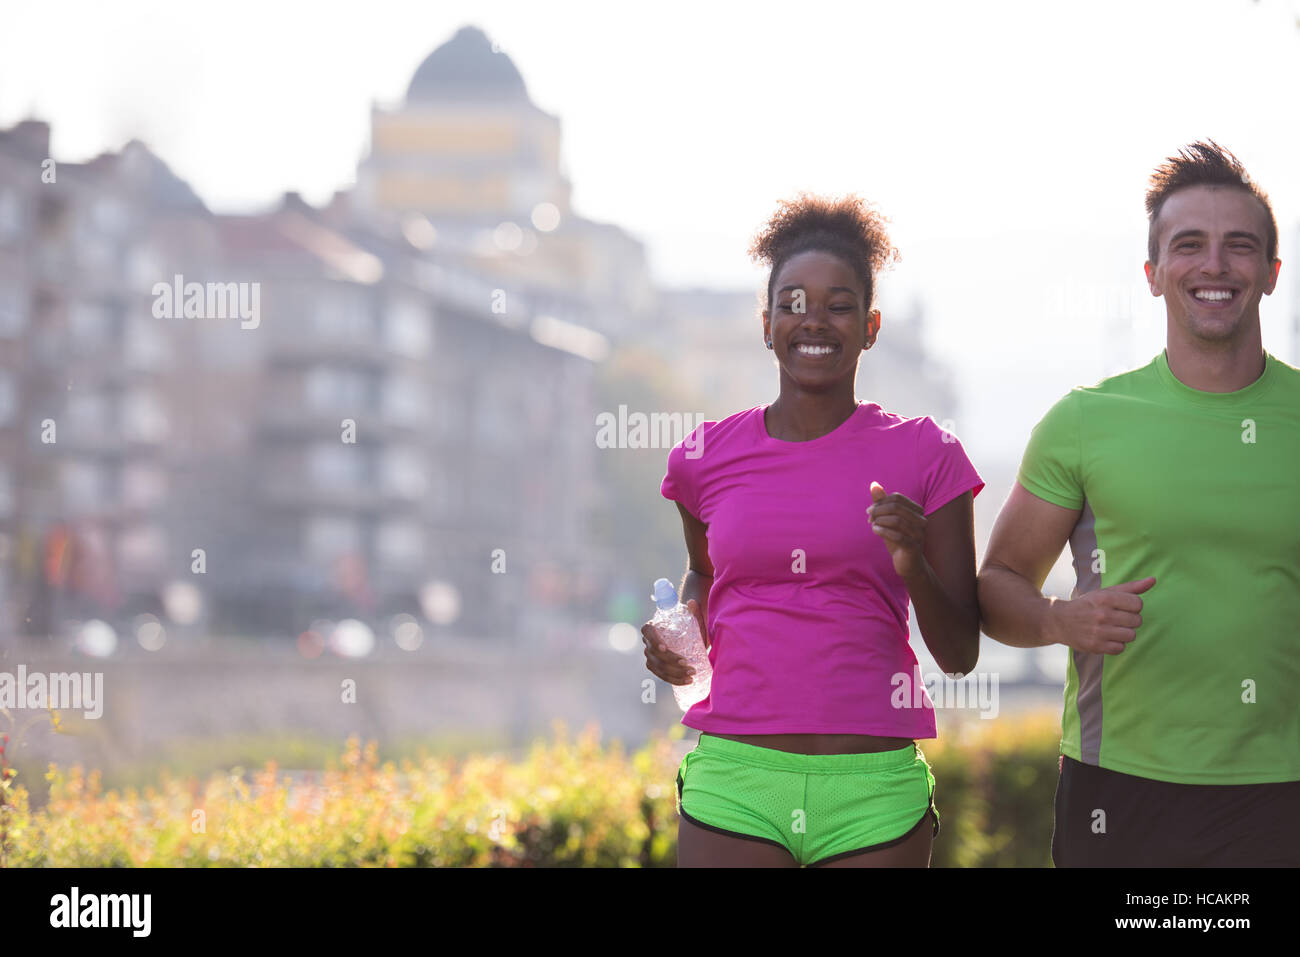 healthy young multiethnic couple jogging in the city at early morning with sunrise in background - Stock Photo